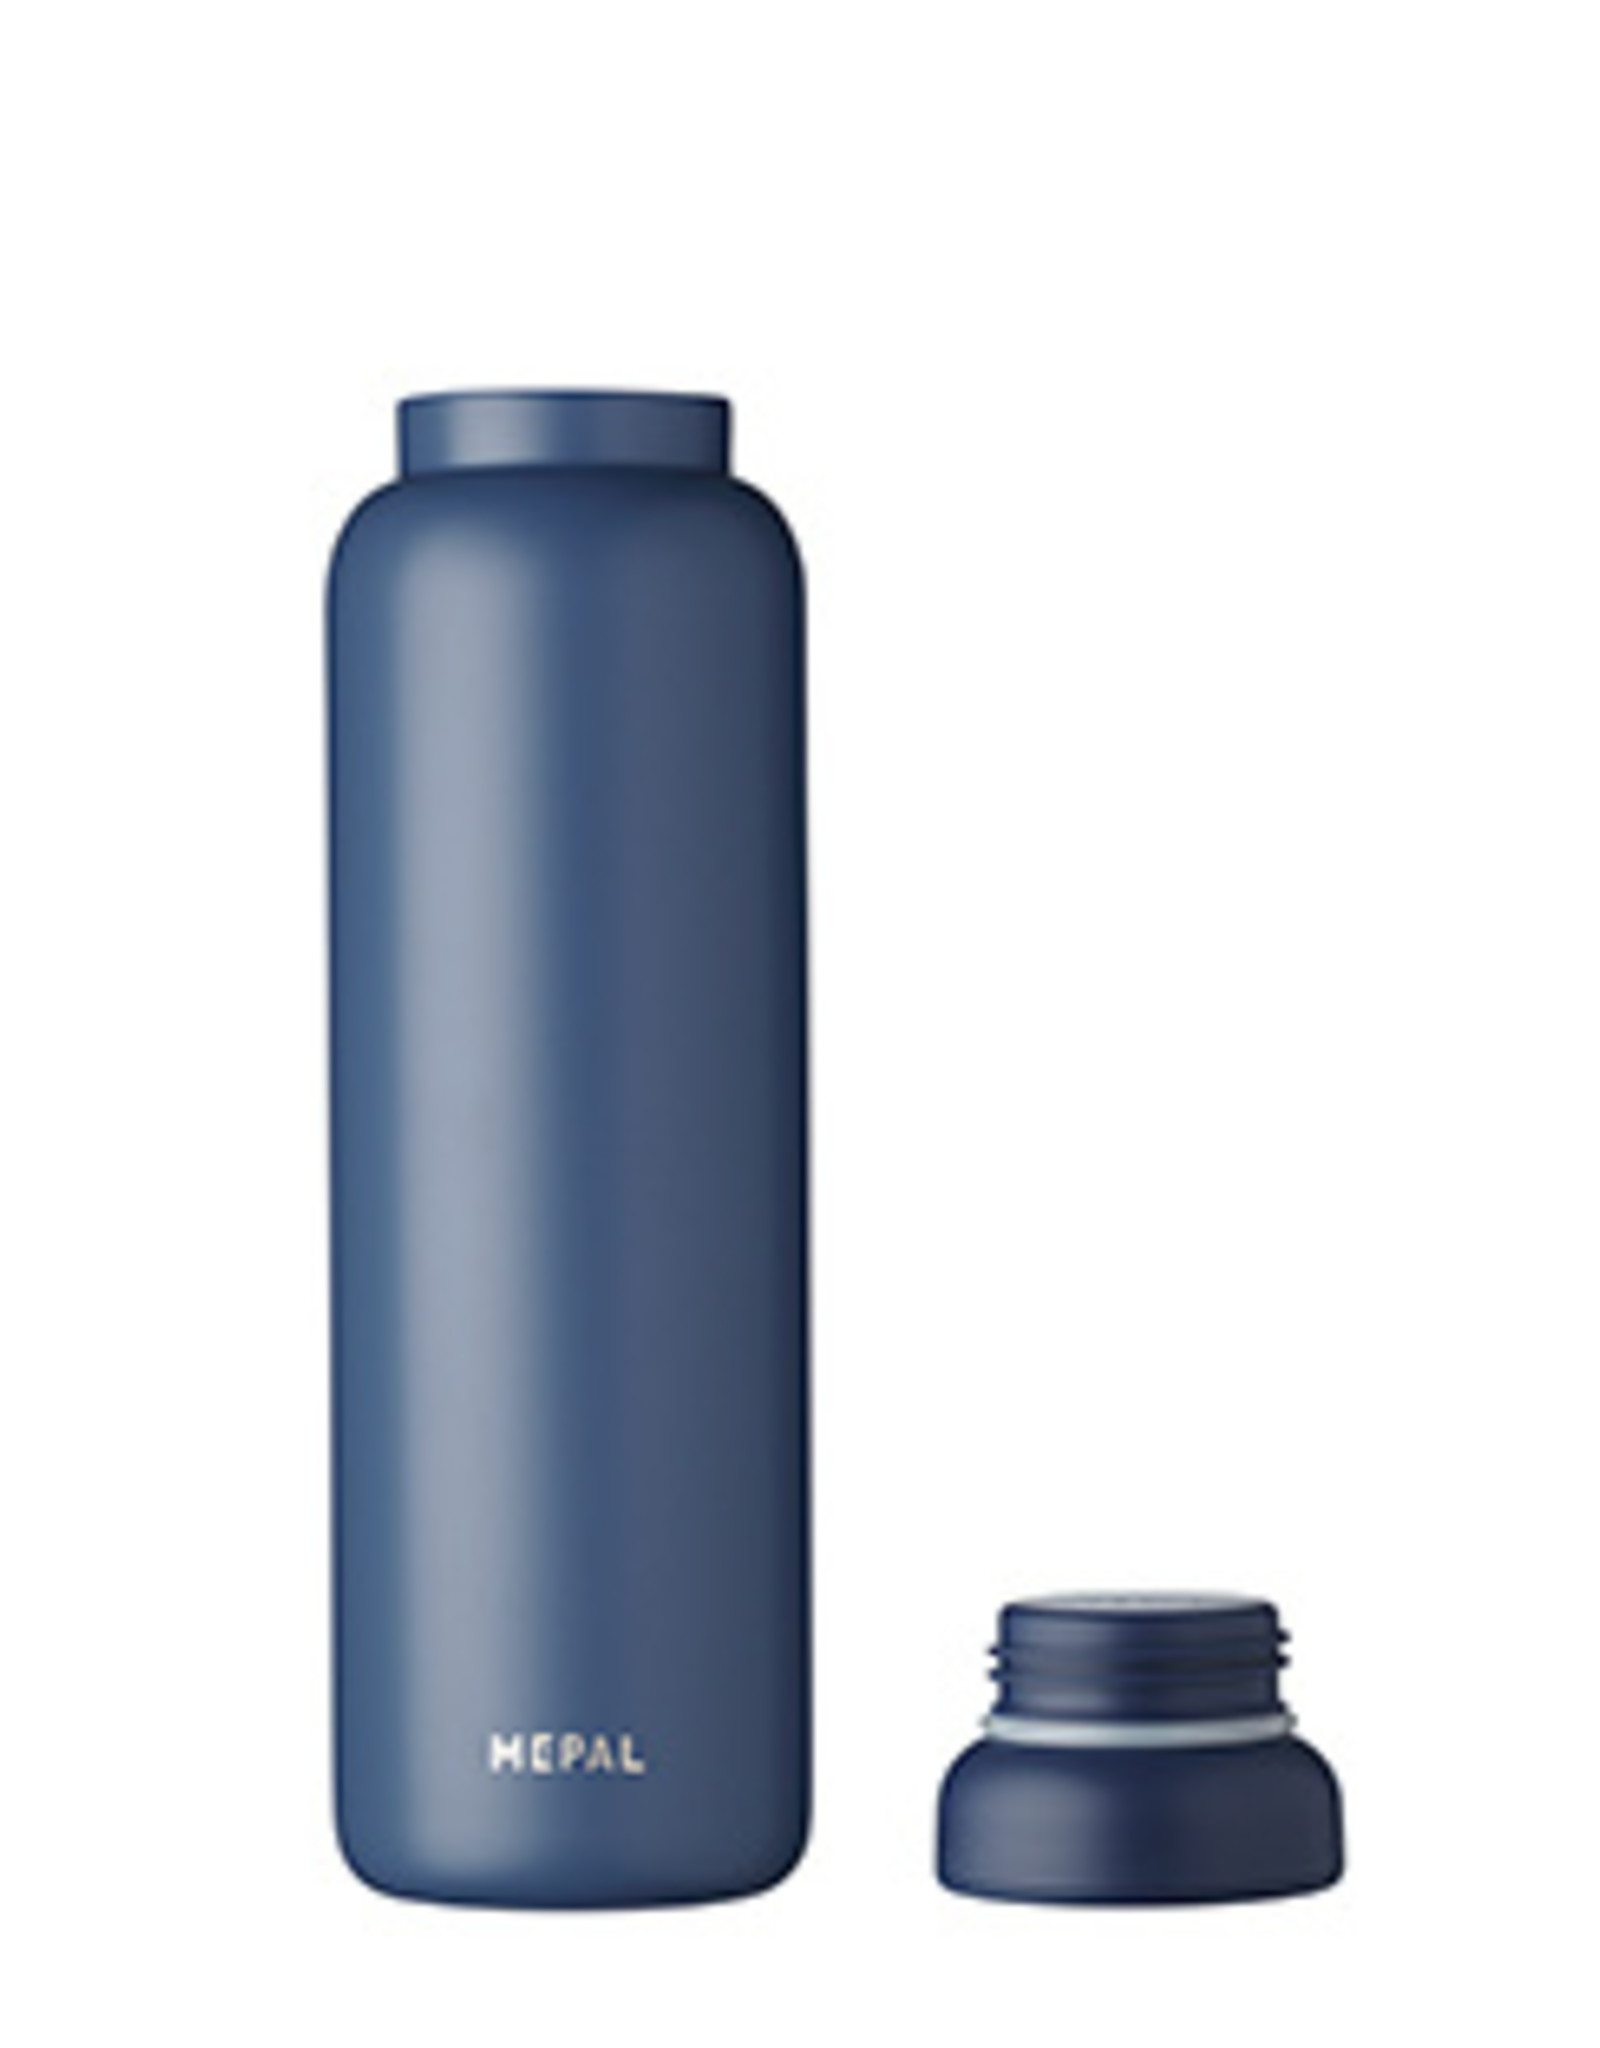 Mepal Isoleerfles ellipse 900 ml - Nordic denim